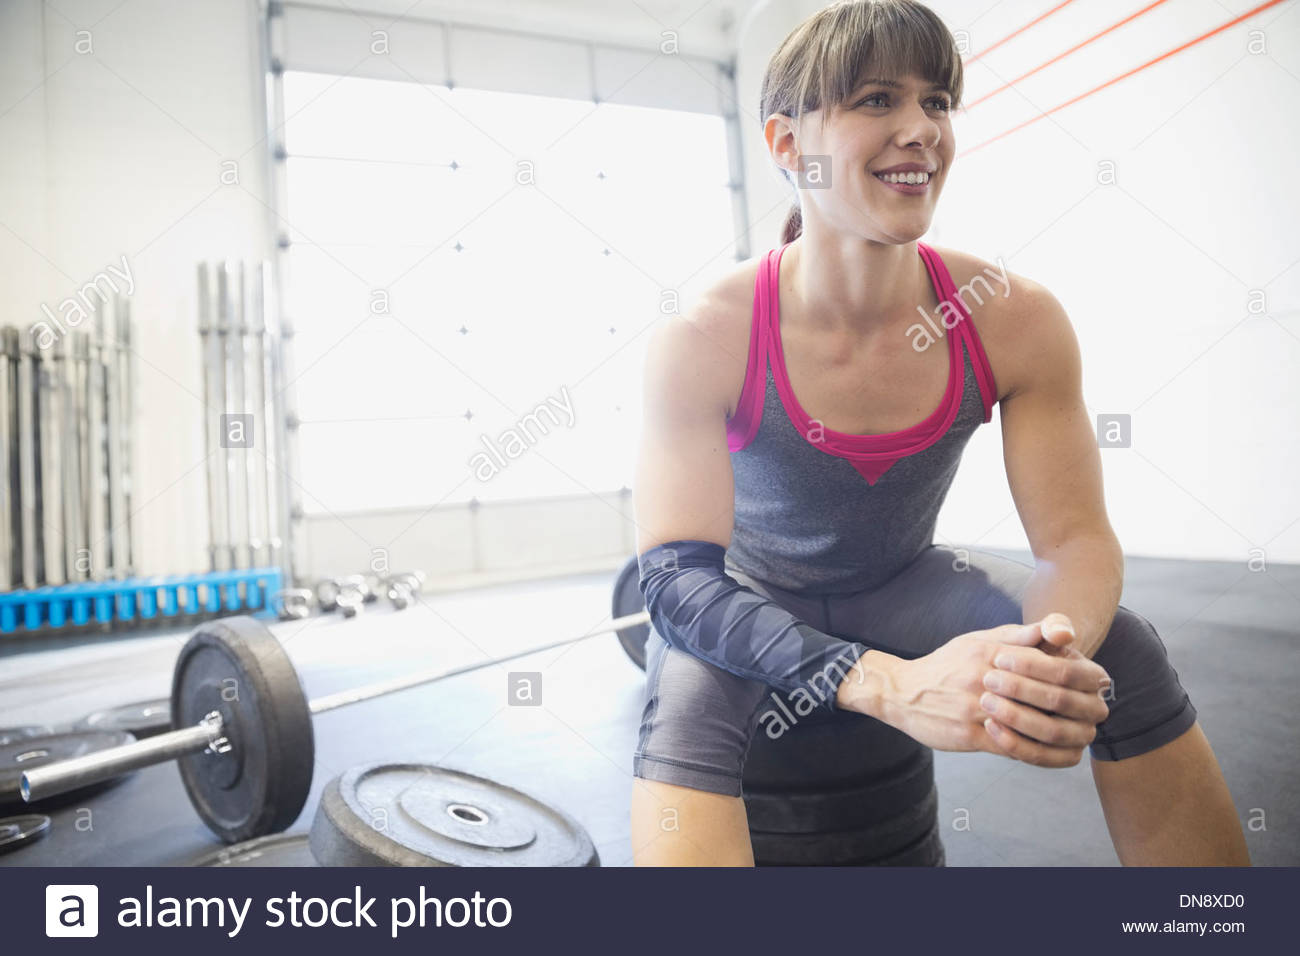 Woman sitting on weights in gym - Stock Image